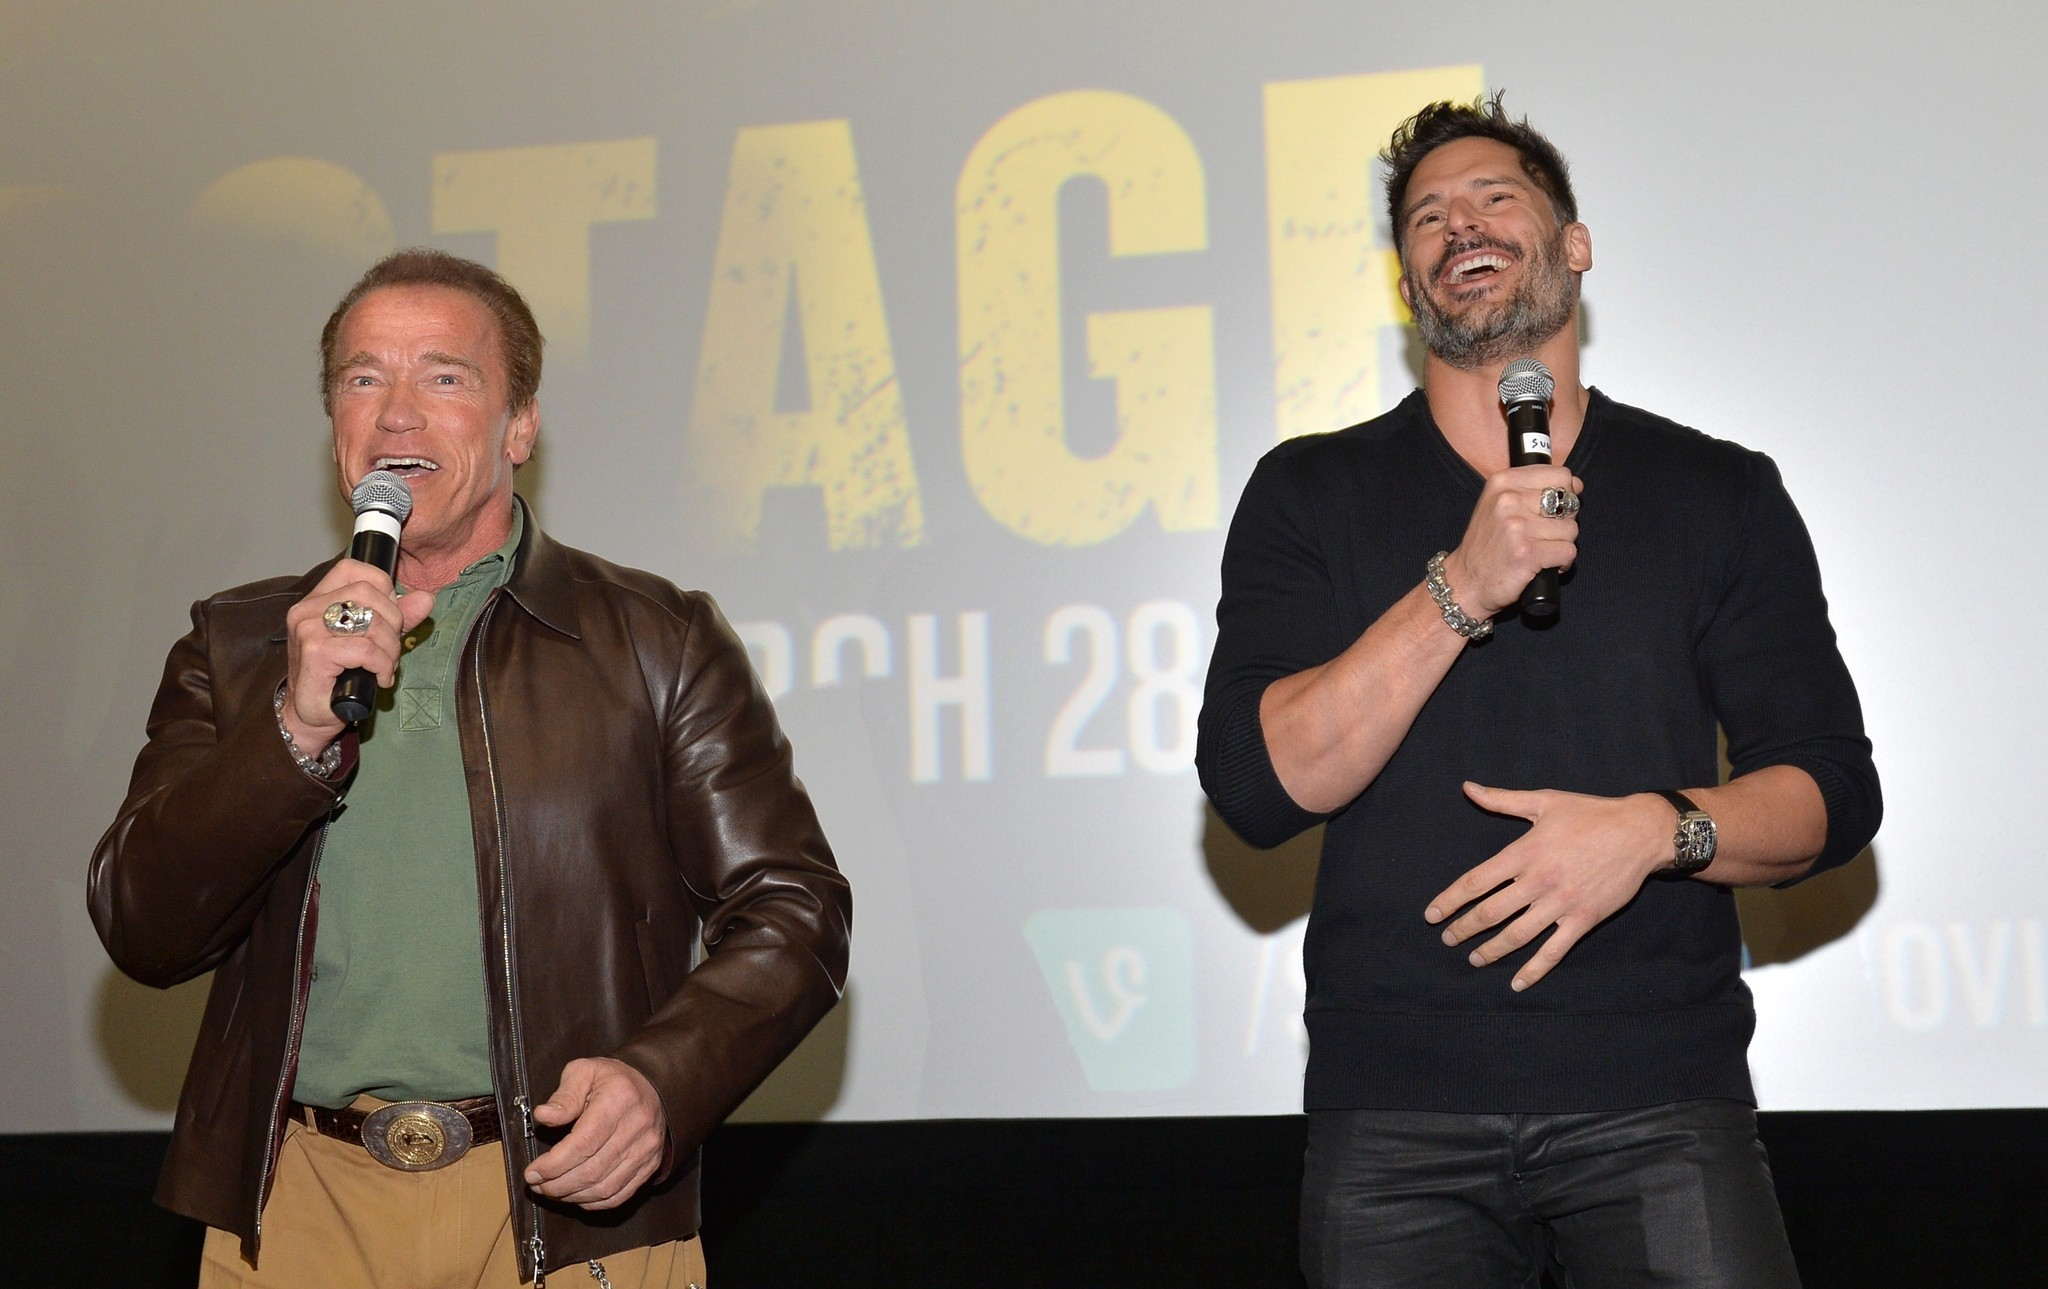 Celeb-spotting around South Florida - Arnold Schwarzenegger and Joe Manganiello